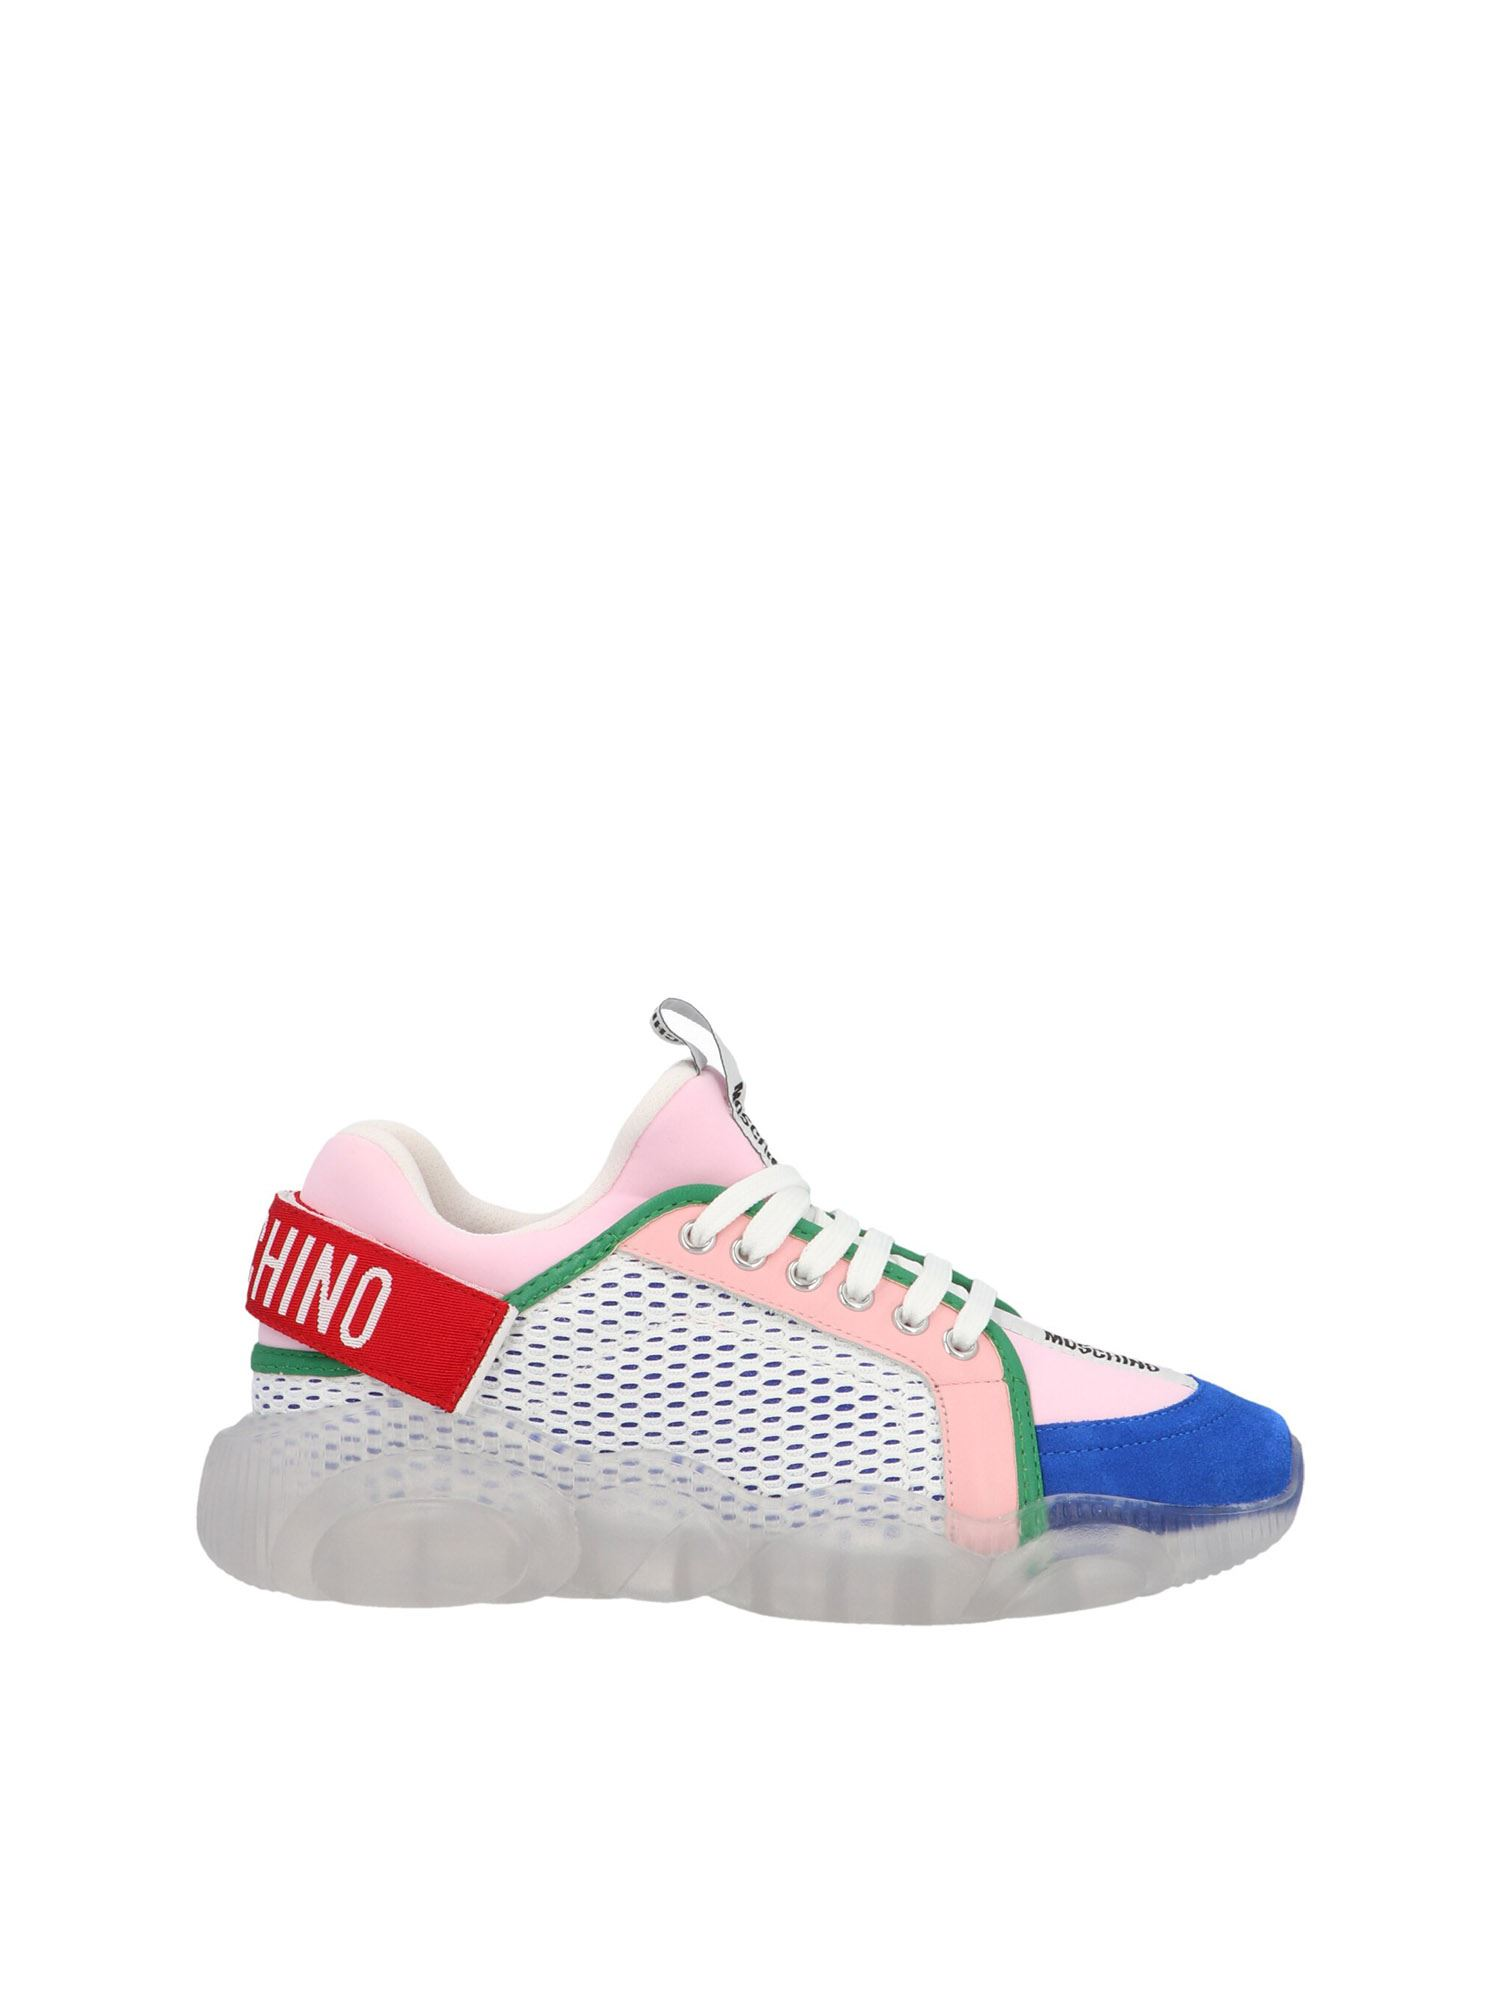 Moschino TEDDY SHOES SNEAKERS IN WHITE AND TRANSPARENT